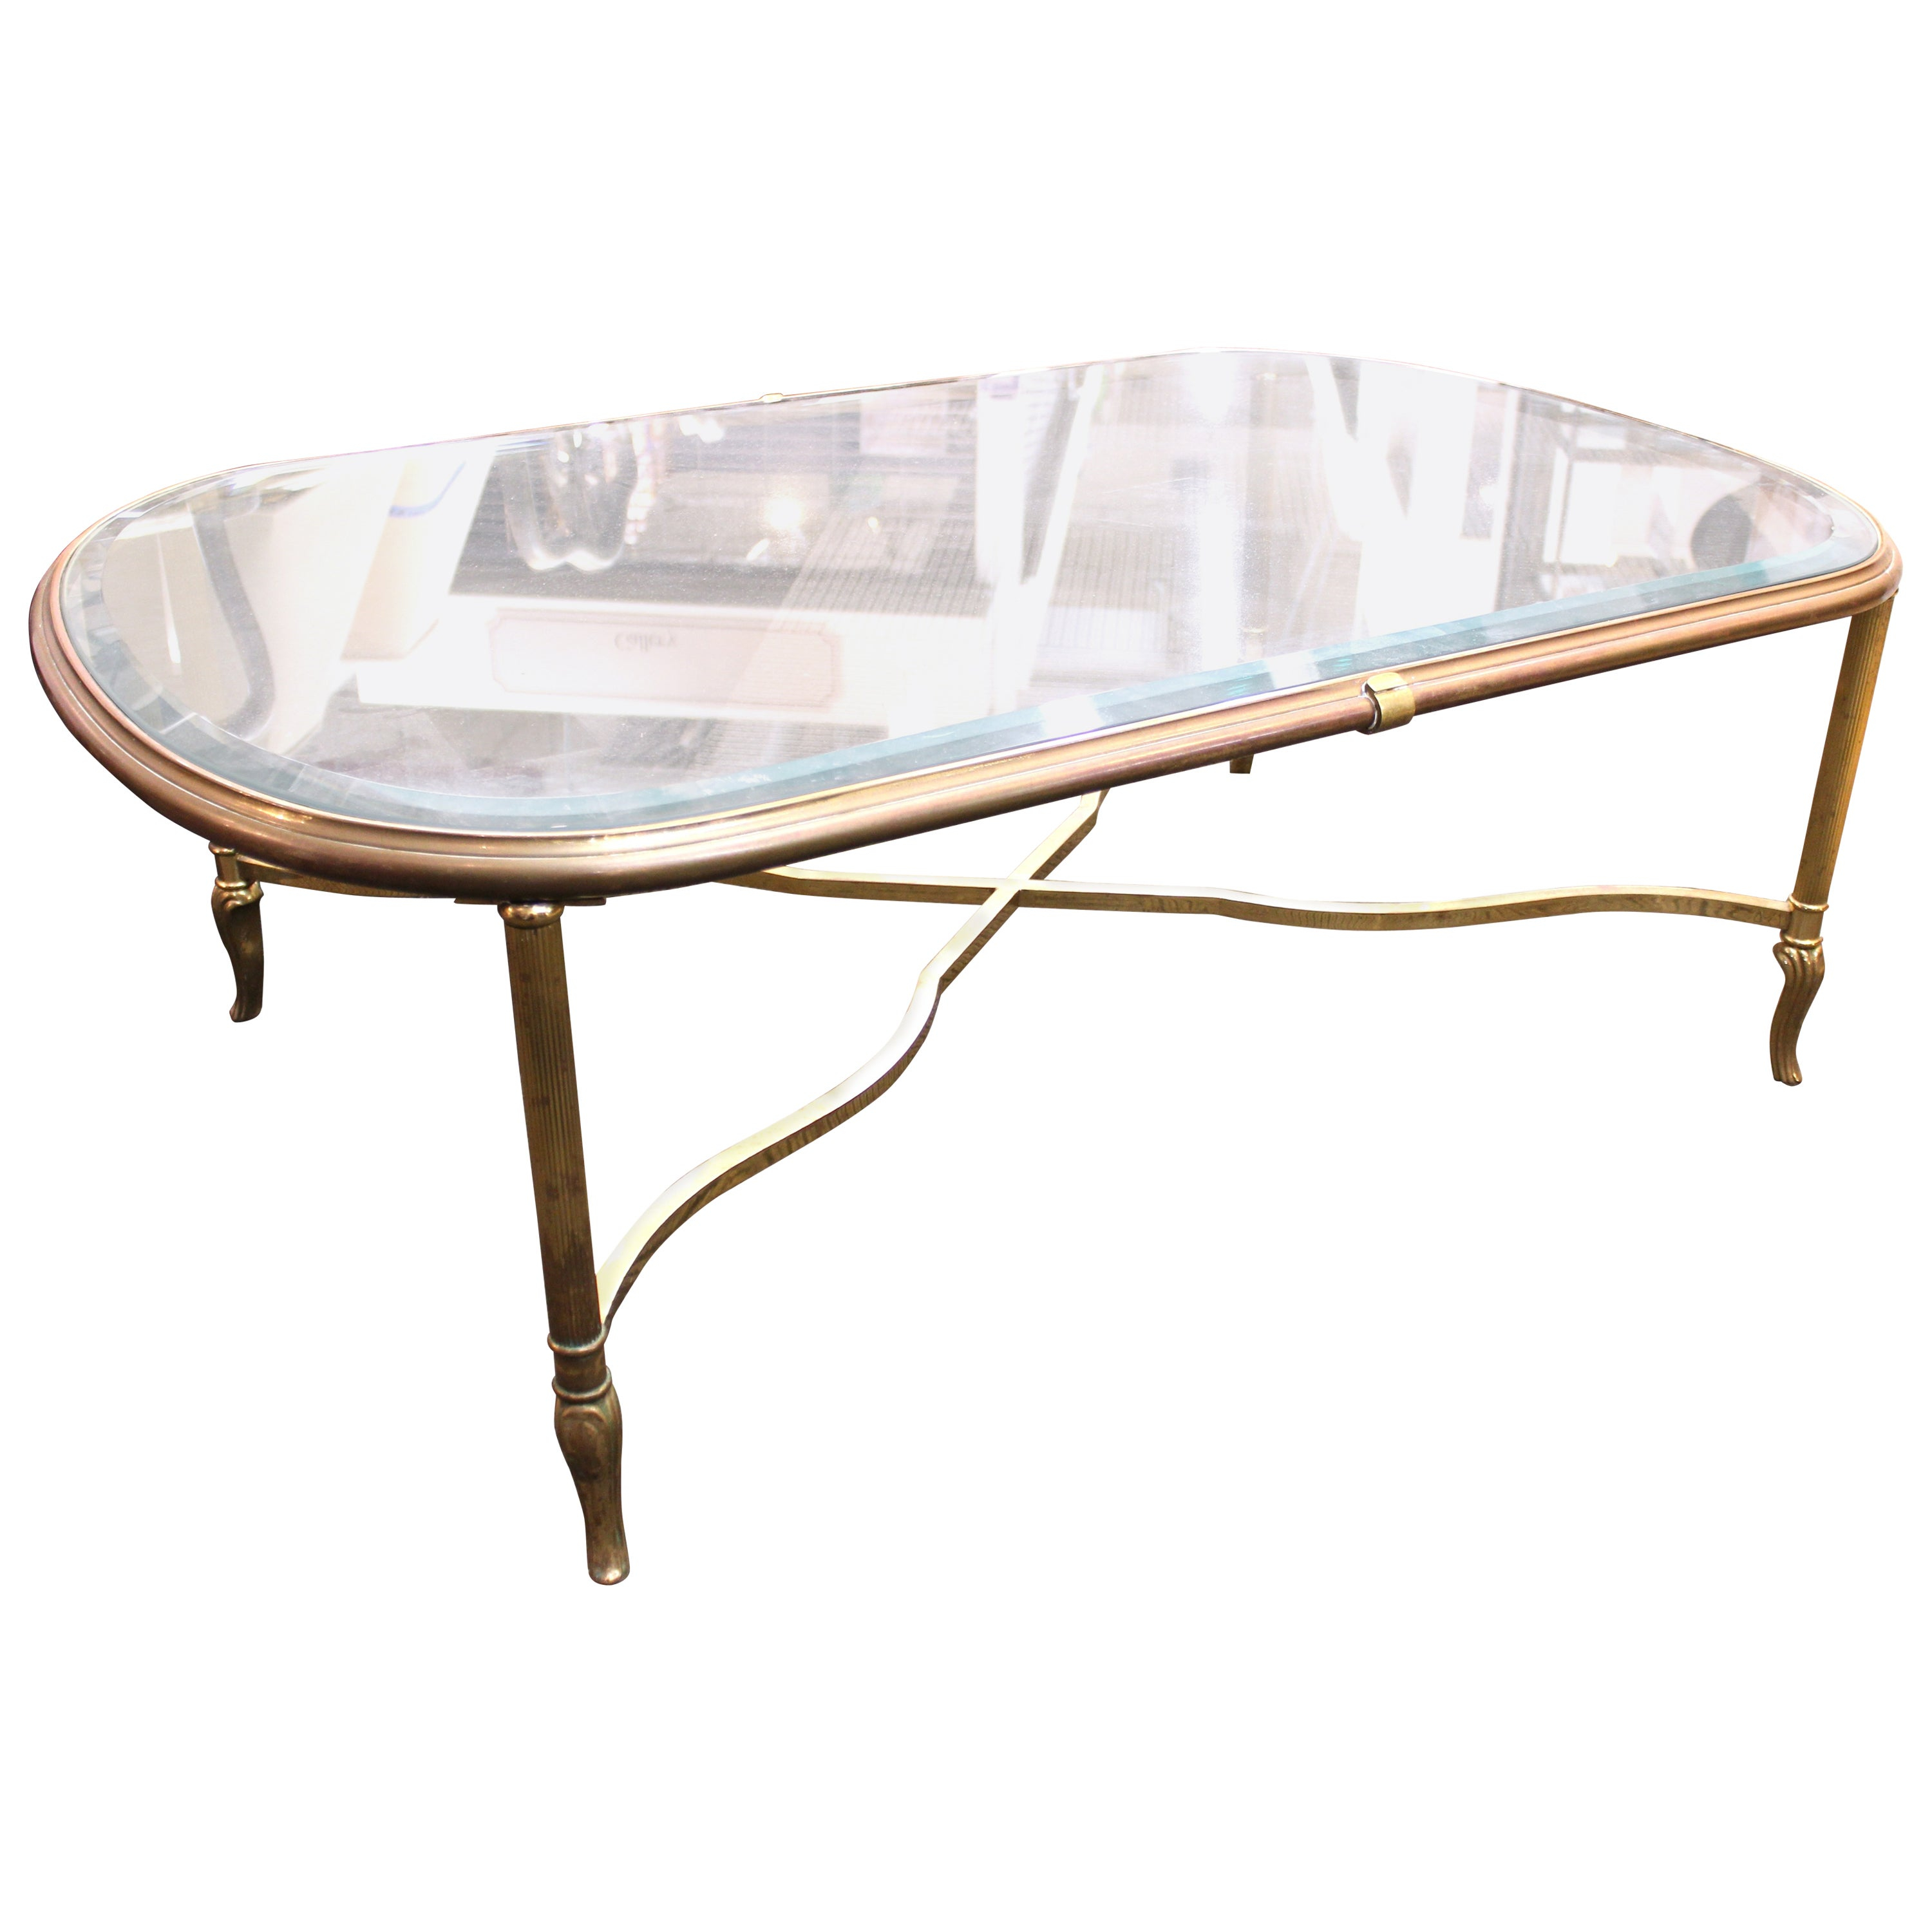 Midcentury Glass Top Coffee Table With Classical Gilt Metal Frame with regard to size 3000 X 3000